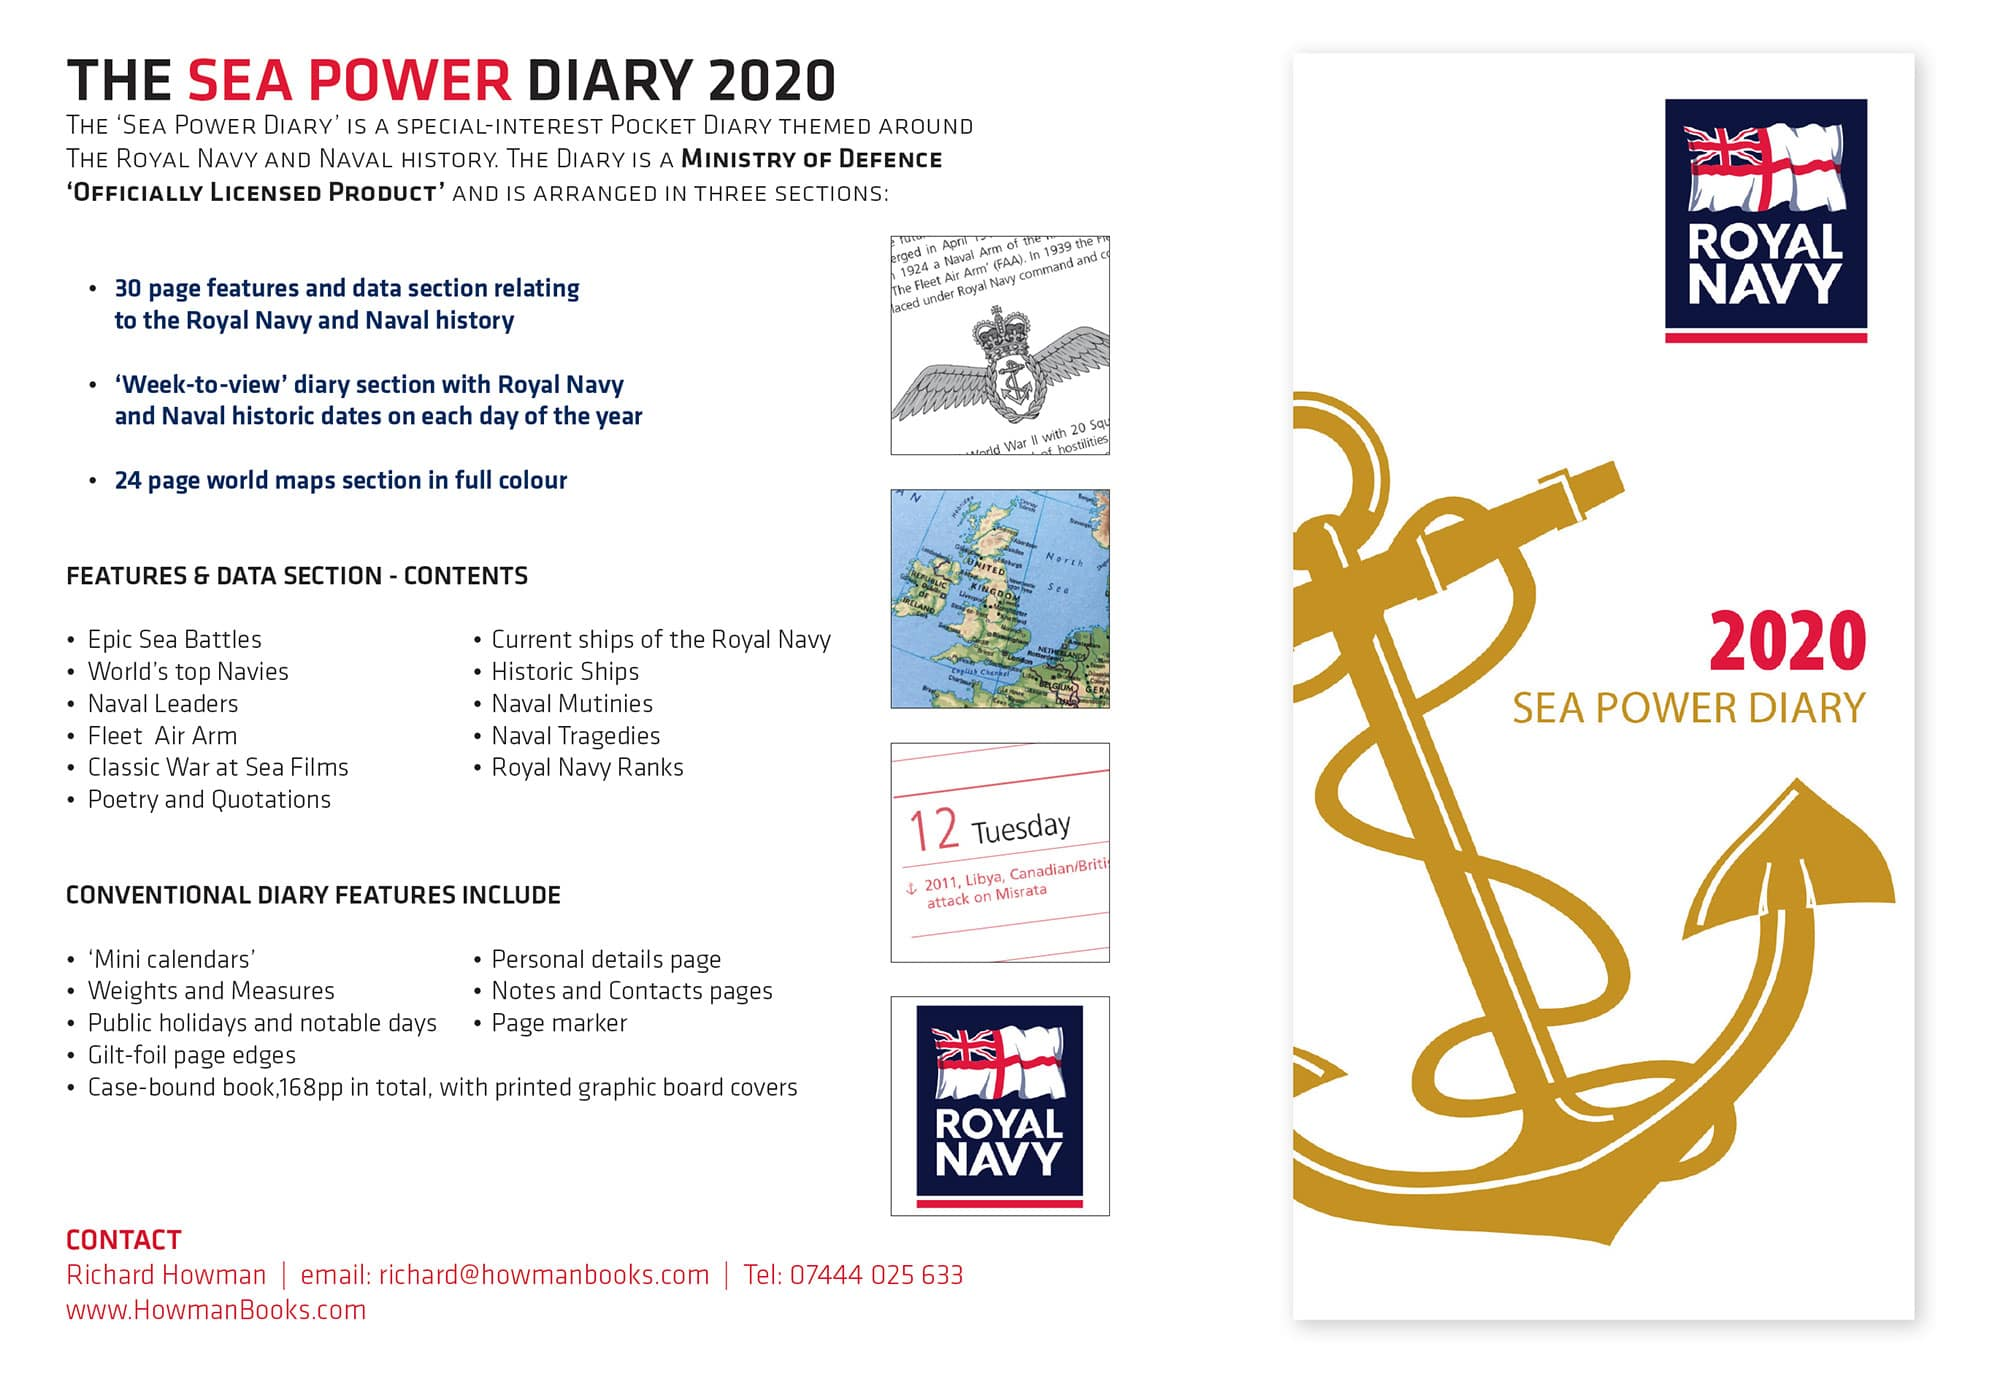 Royal Navy Diary 2020 - Sea Power Diary